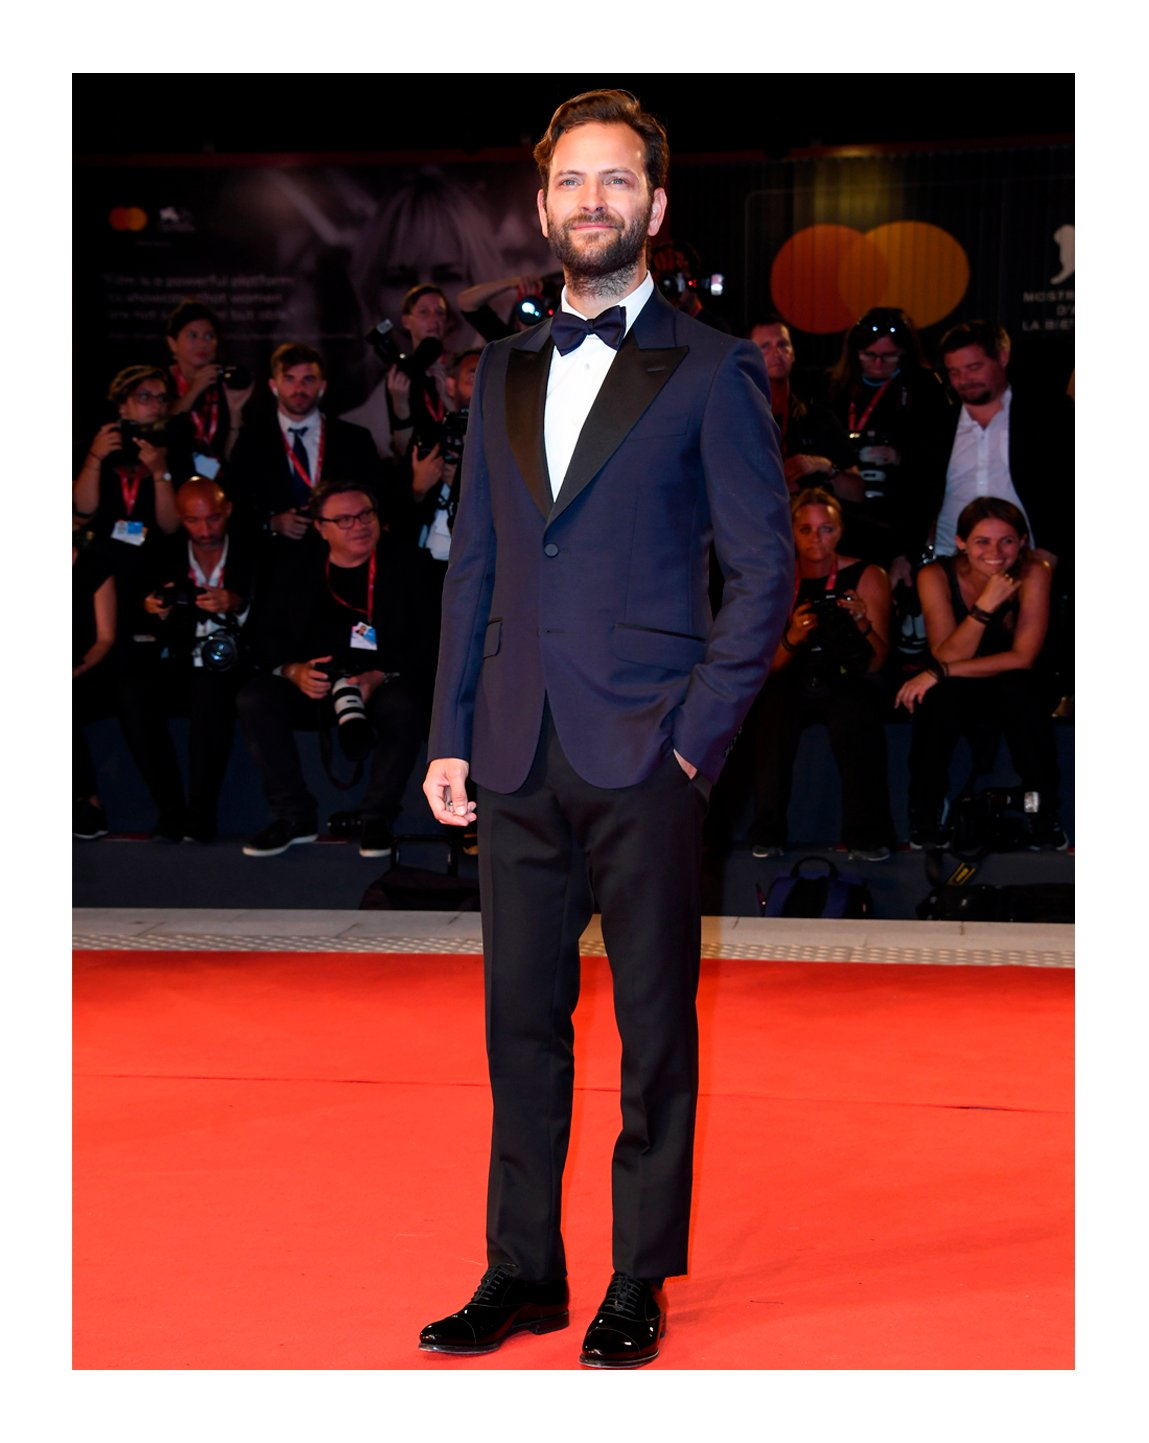 .@AleBorghi_ attended the screening of 'Wasp Network' during the 76th Venice Film Festival wearing a Heritage tuxedo, evening shirt, grosgrain bow tie and leather lace-ups from #GucciPreFall19 by #AlessandroMichele. #BiennaleCinema2019 #Venezia76 @la_Biennale https://t.co/heuuEQIWE4